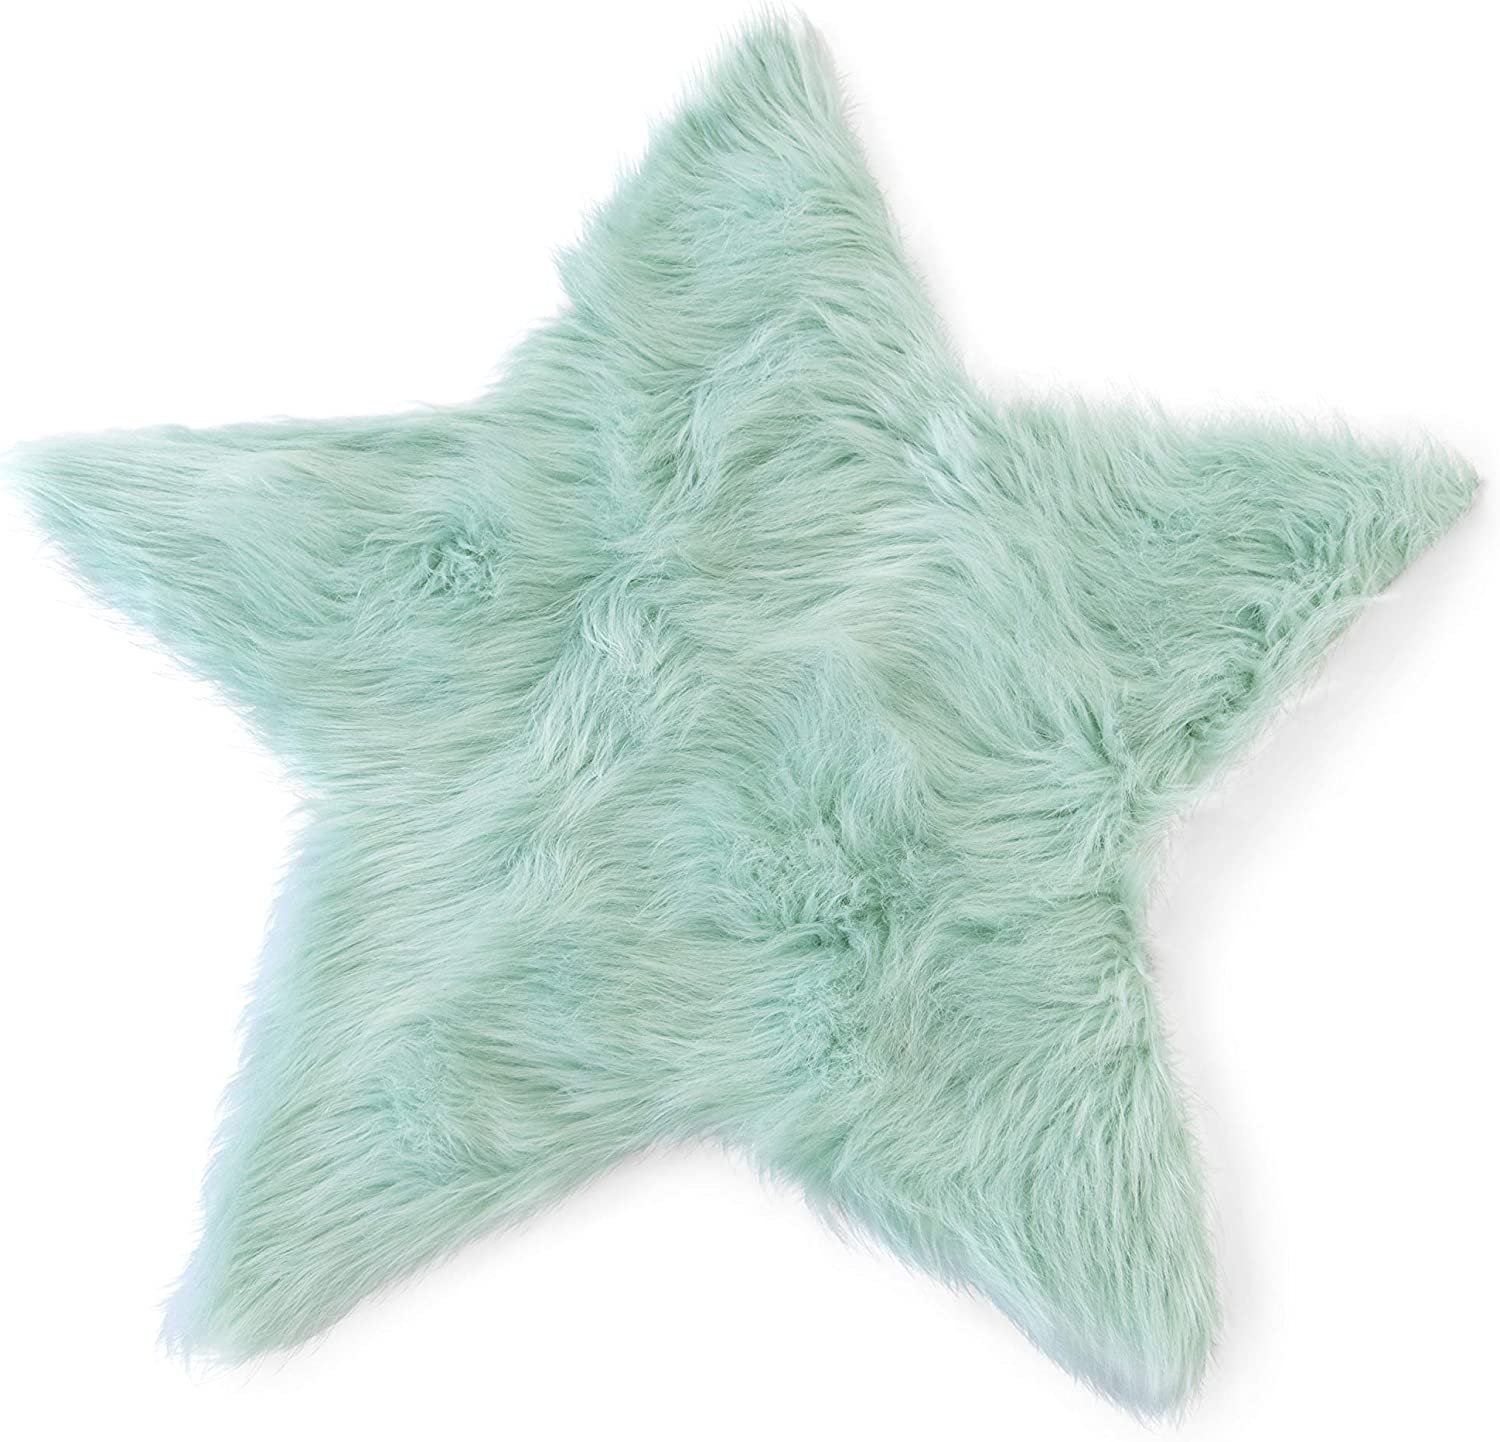 Machine Washable Faux Sheepskin Mint Star Rug 2' x 2' - Soft and Silky - Perfect for Baby's Room, Nursery, playroom (Star Small Mint)